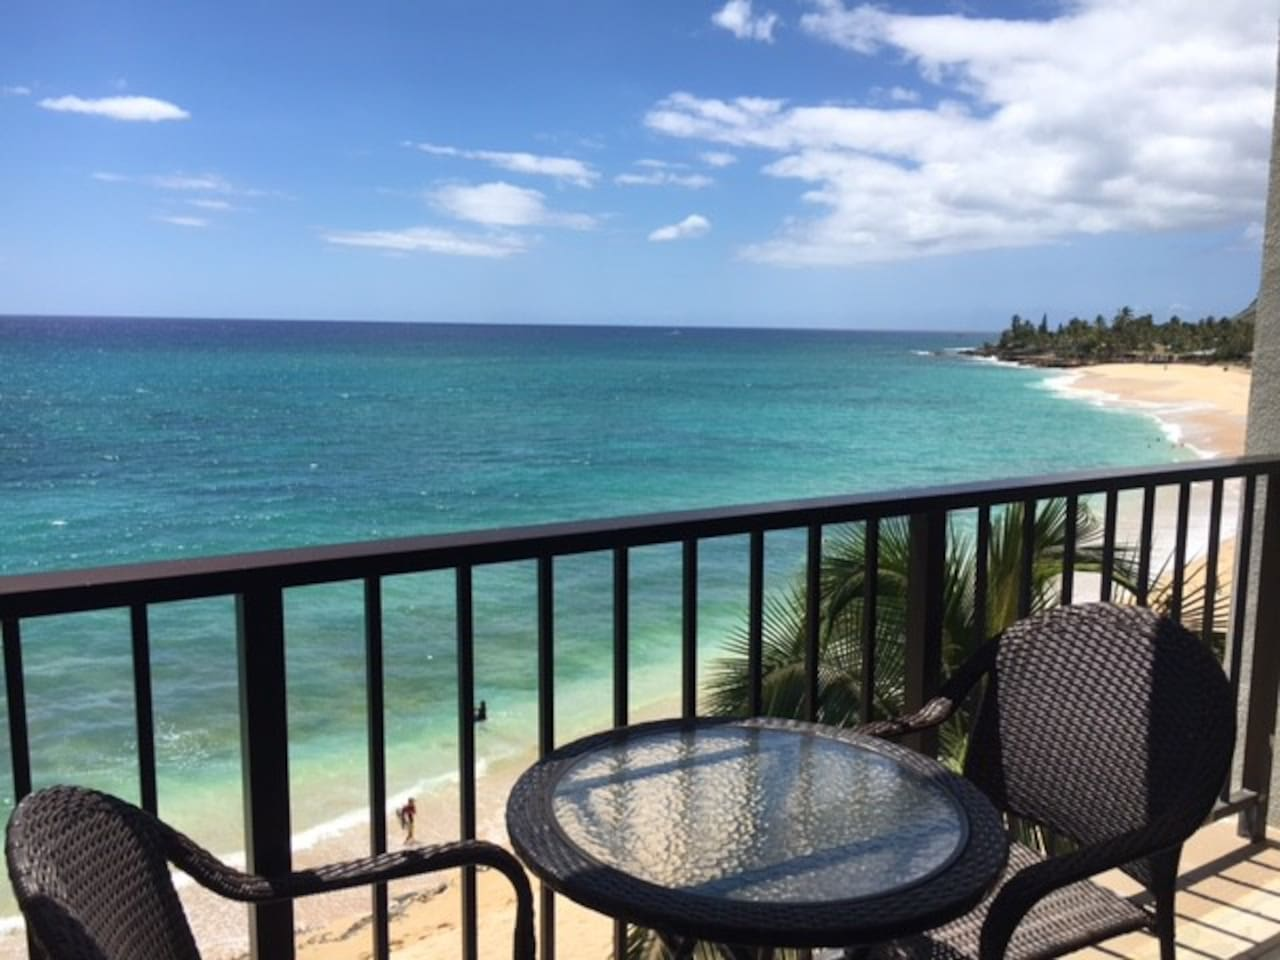 Million Dollar view from the lanai!